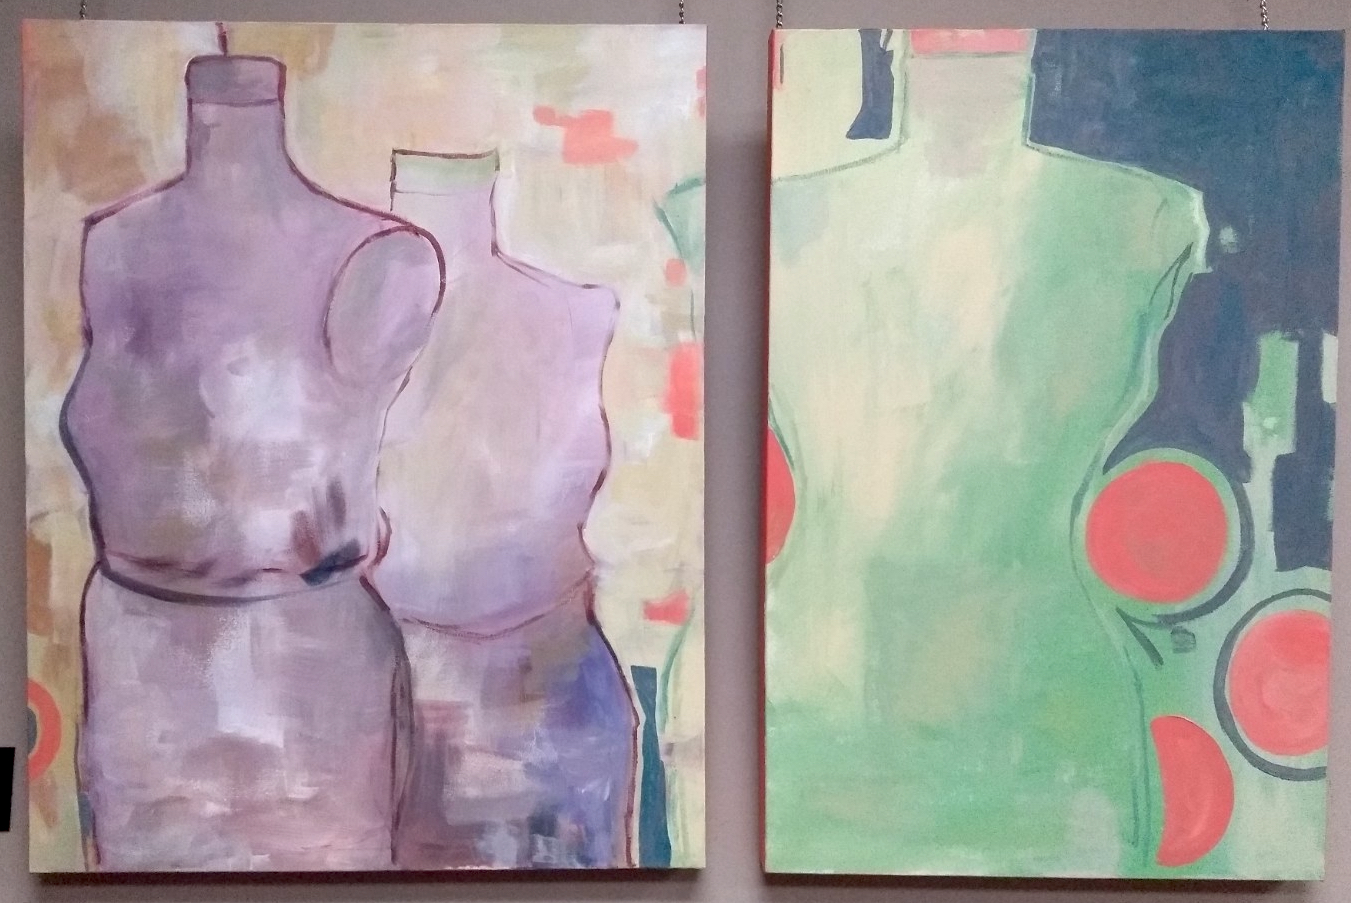 Go-go dancers in the workshop (diptych)